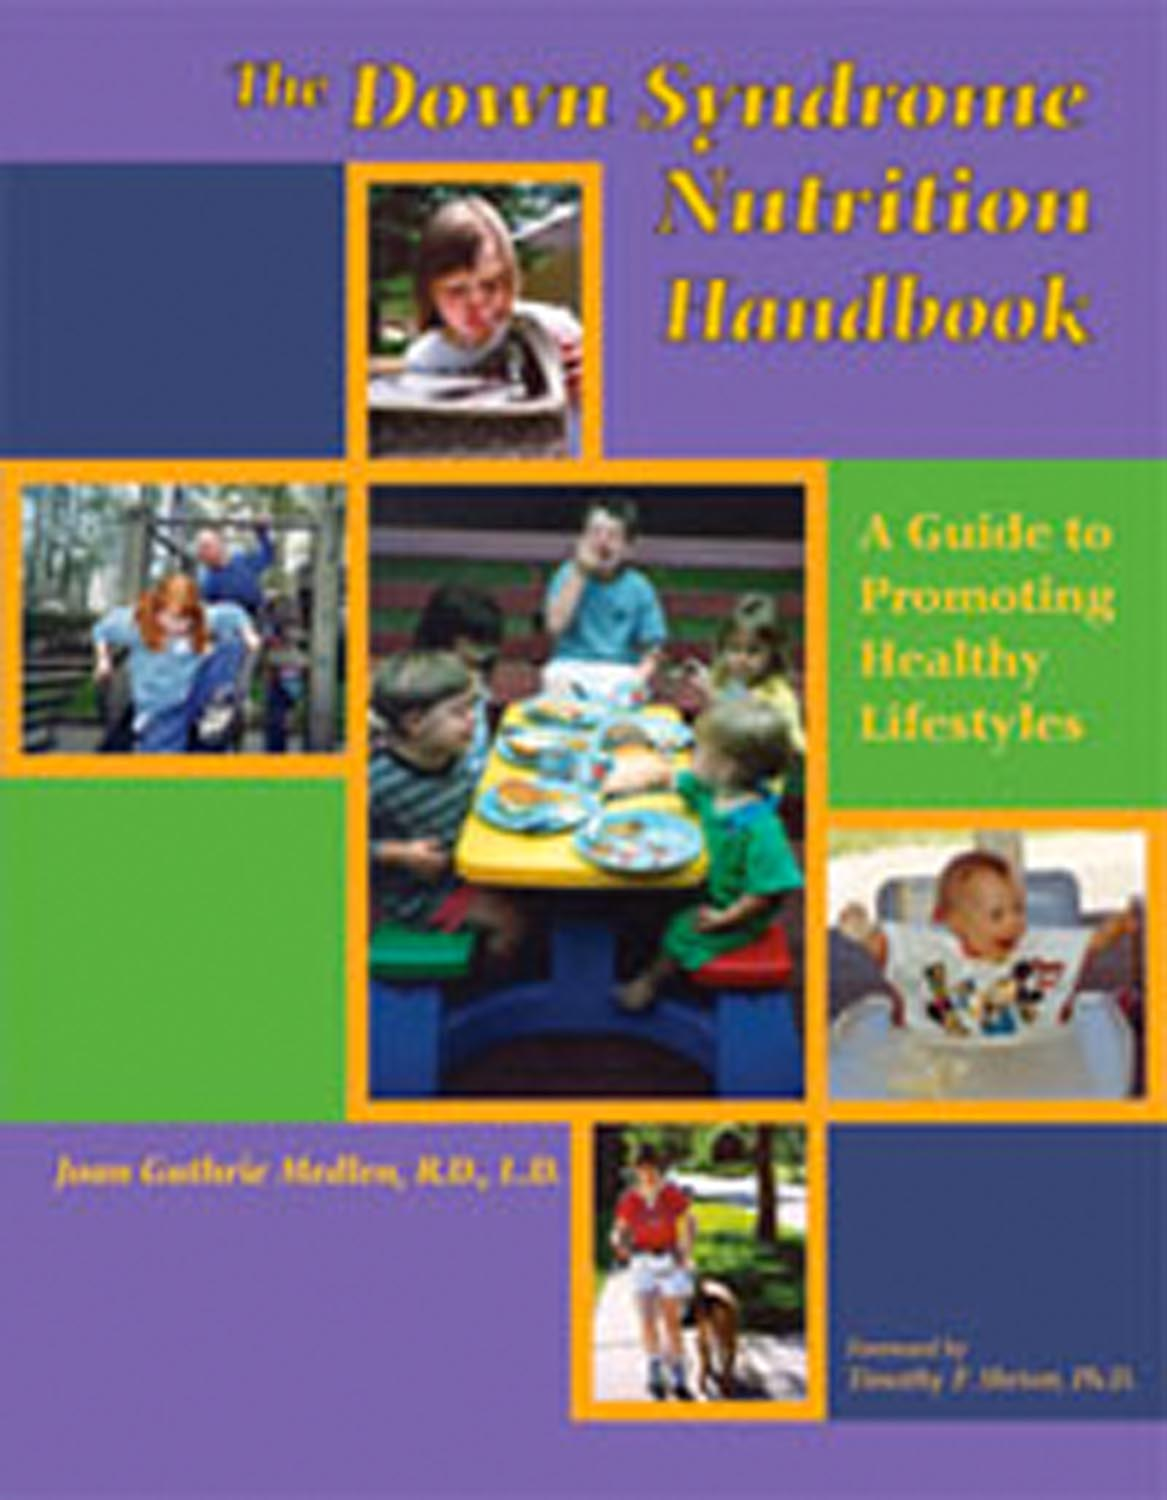 The Down Syndrome Nutrition Handbook